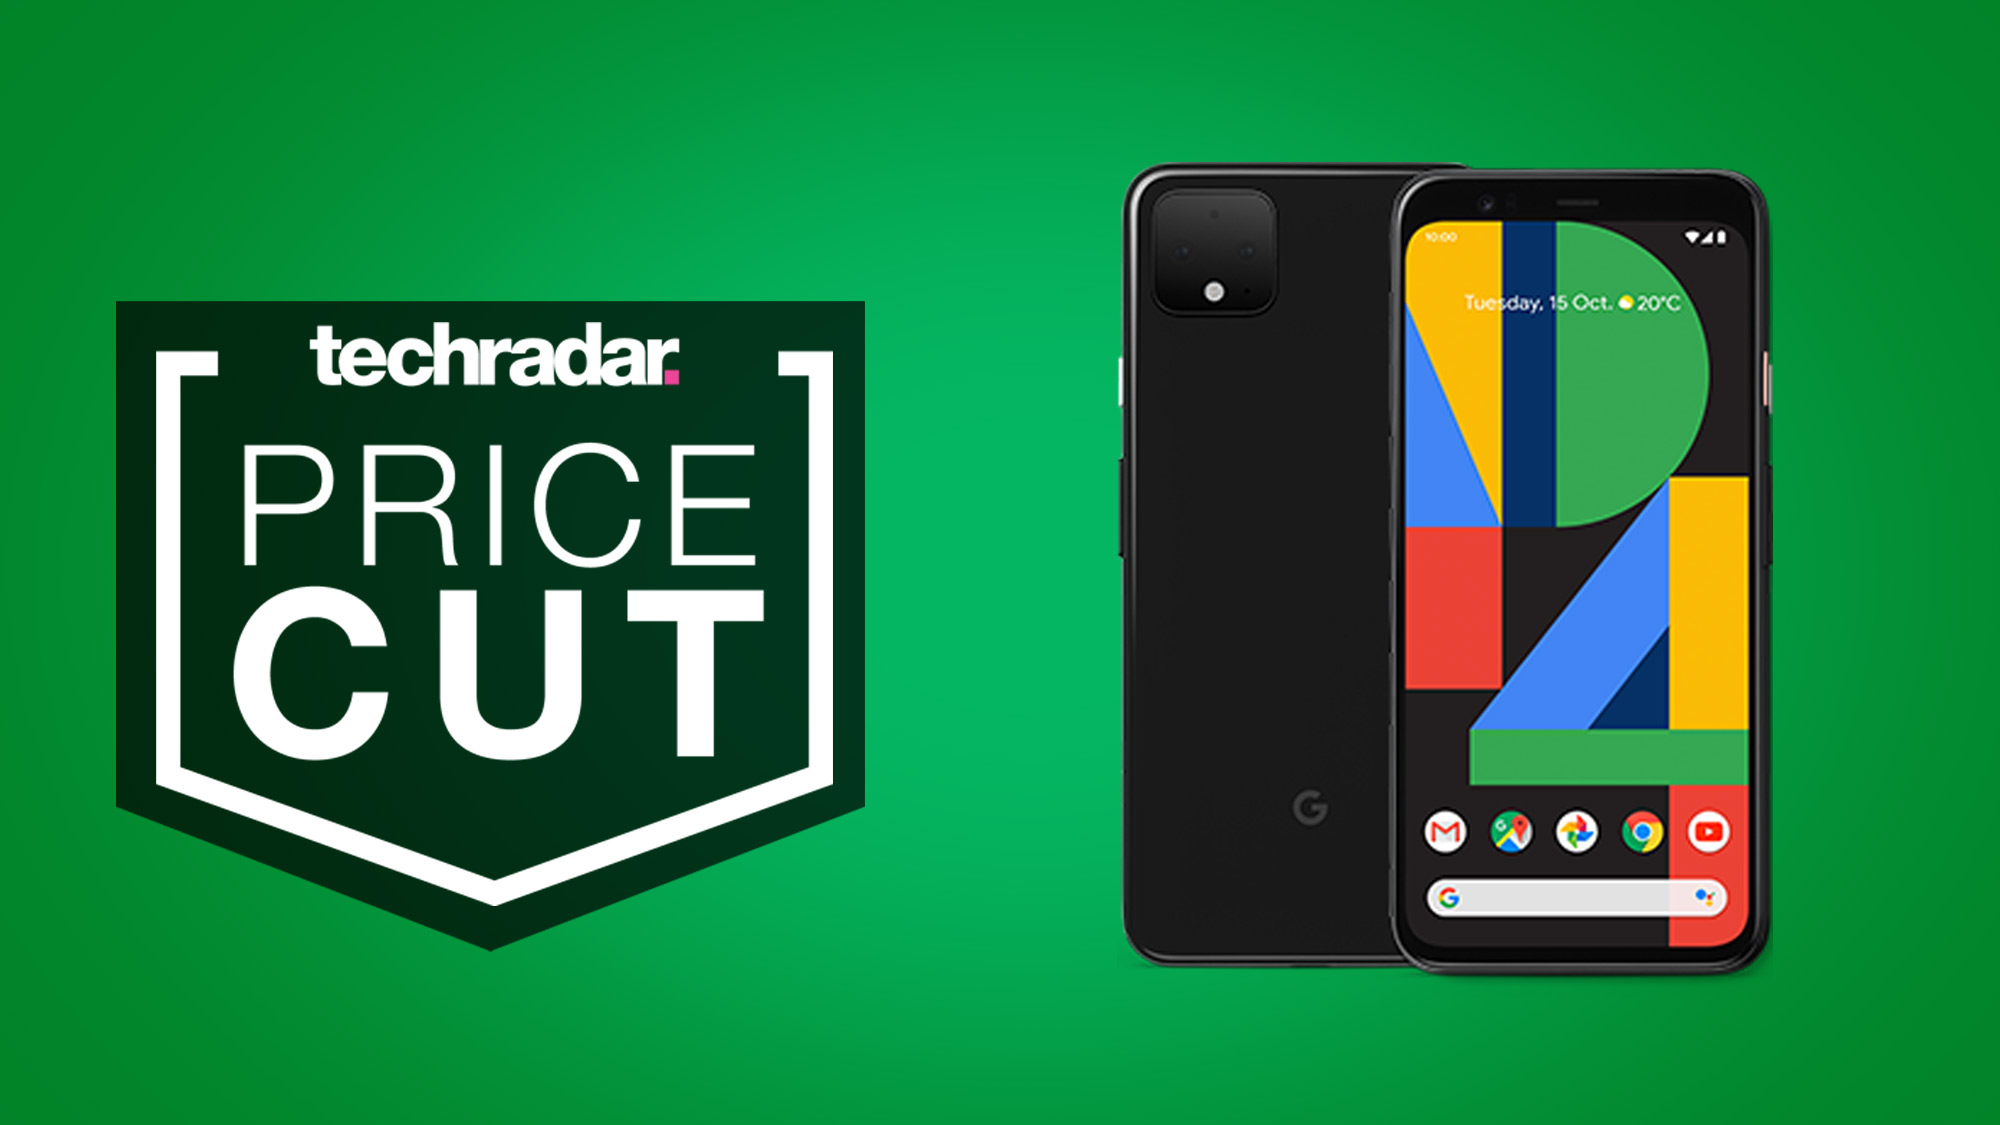 Google Pixel 4 is half-price at Optus right now